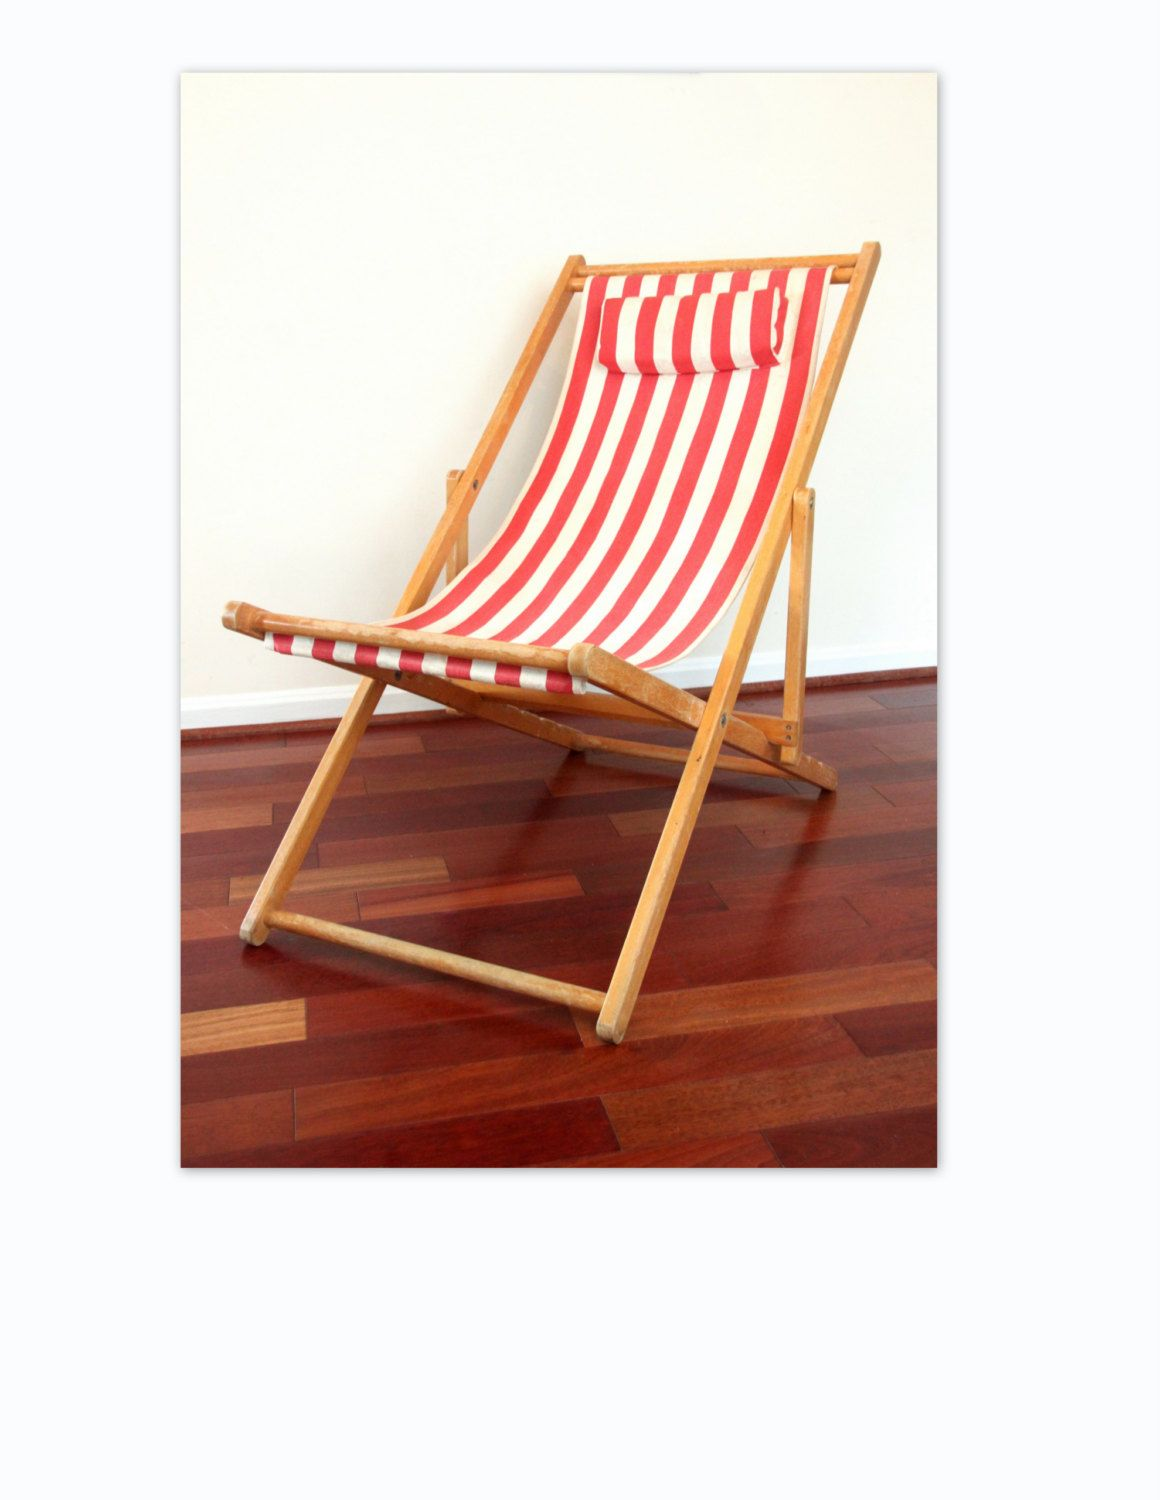 Vintage folding beach chairs - Folding Deck Chair With Red Striped Fabric Beach Chair Reclining Chair Stripes Canvas Chair Sling Chair Outdoor Chair Wth 700